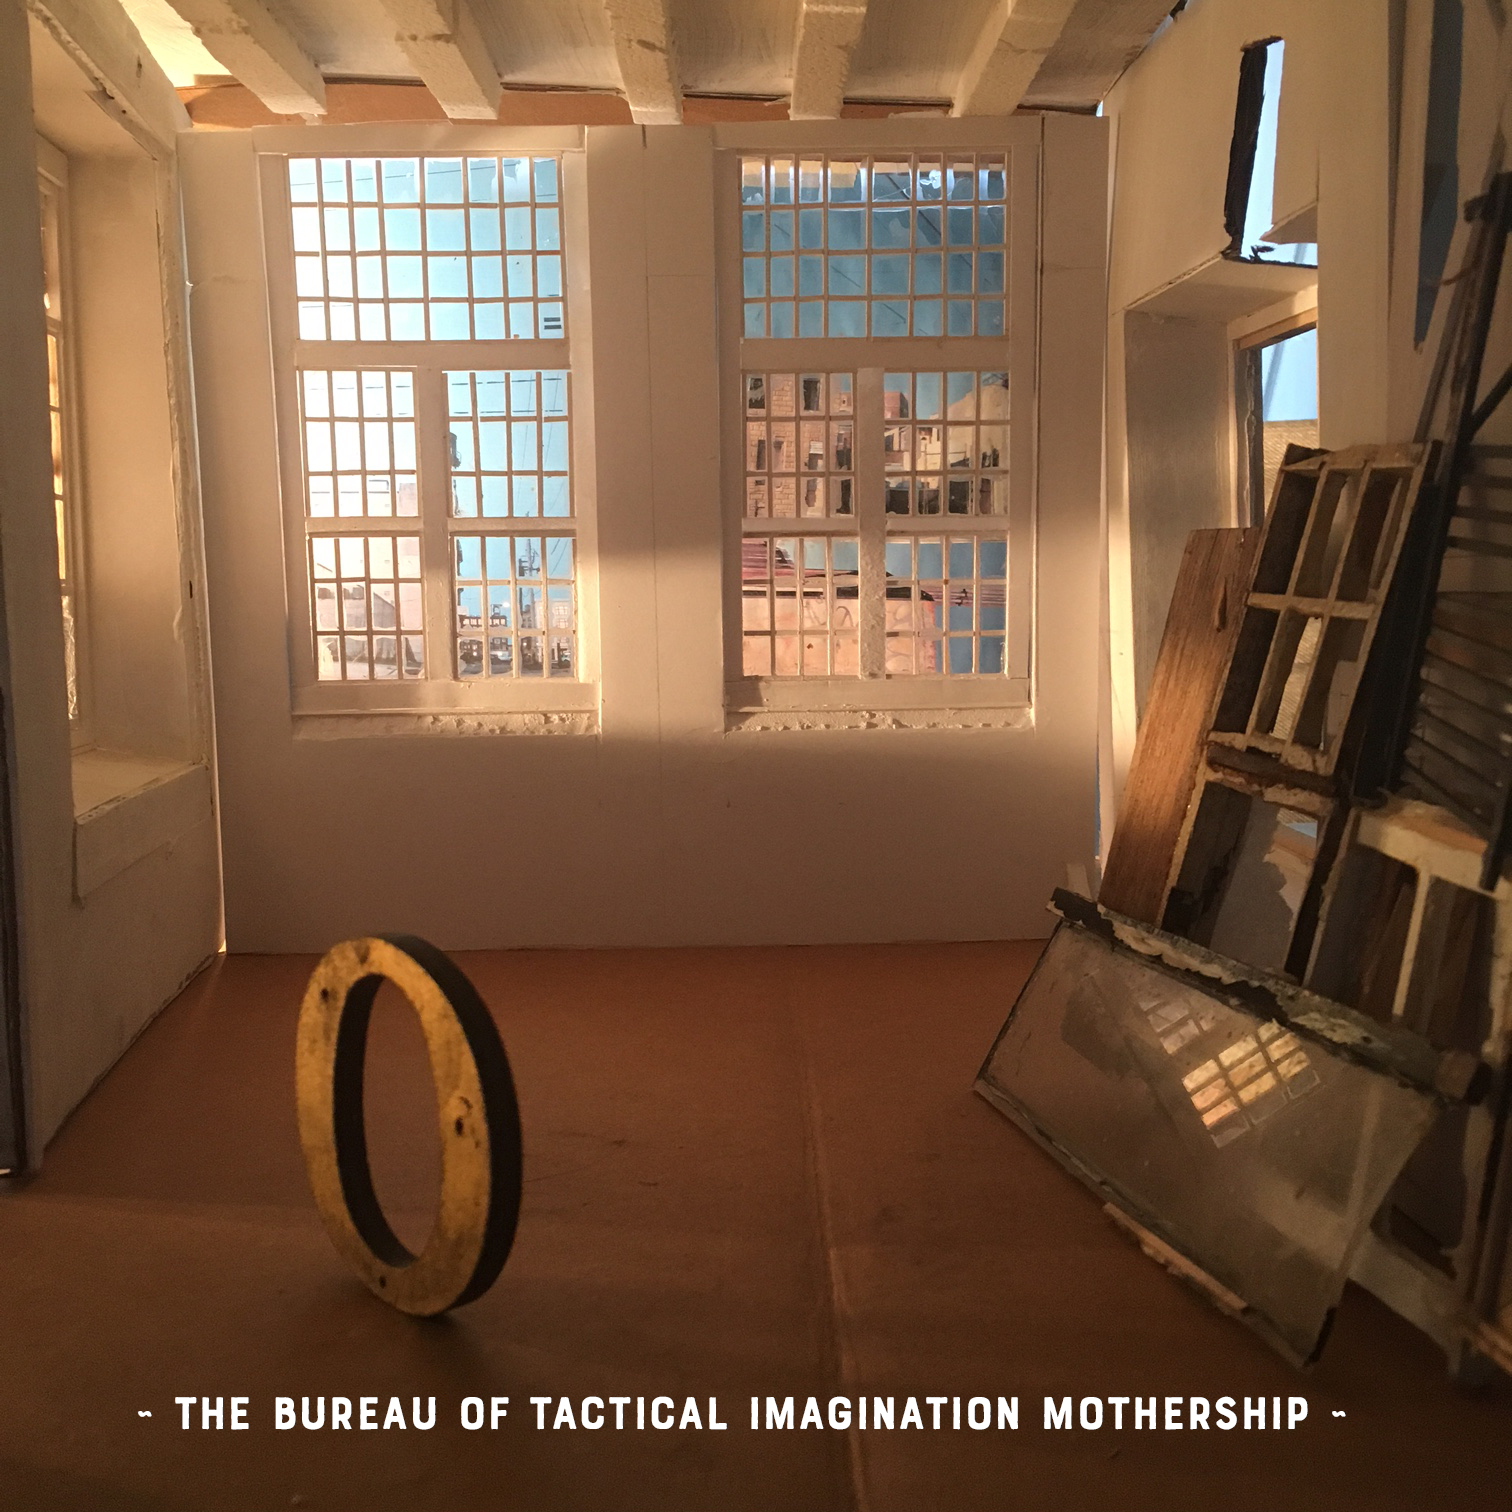 (Can you tell this image is a miniature? Its my little dollhouse-sized studio - a replica of the real Tactical Imagination Mothership. Hope you can visit sometime...)